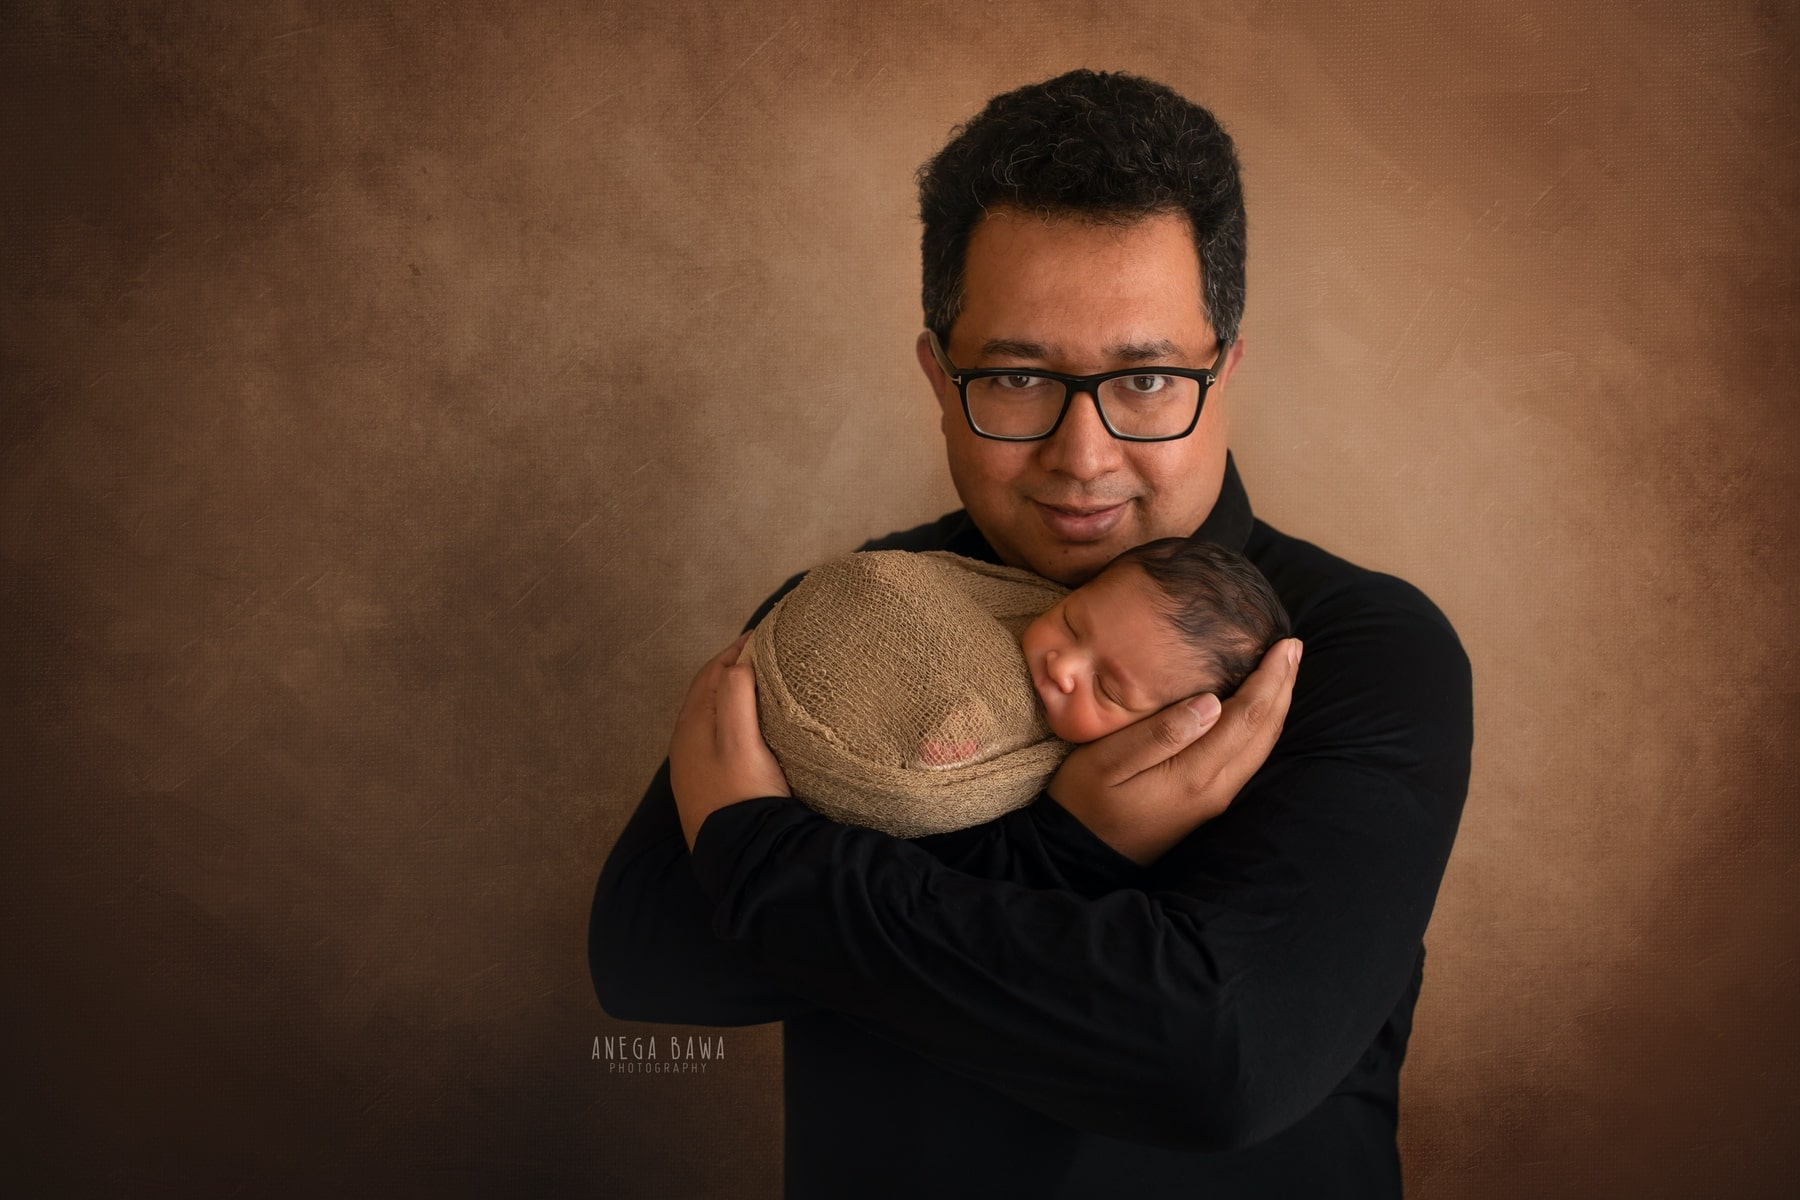 brown balck father and baby photography delhi 25 days newborn photoshoot gurgaon anega bawa